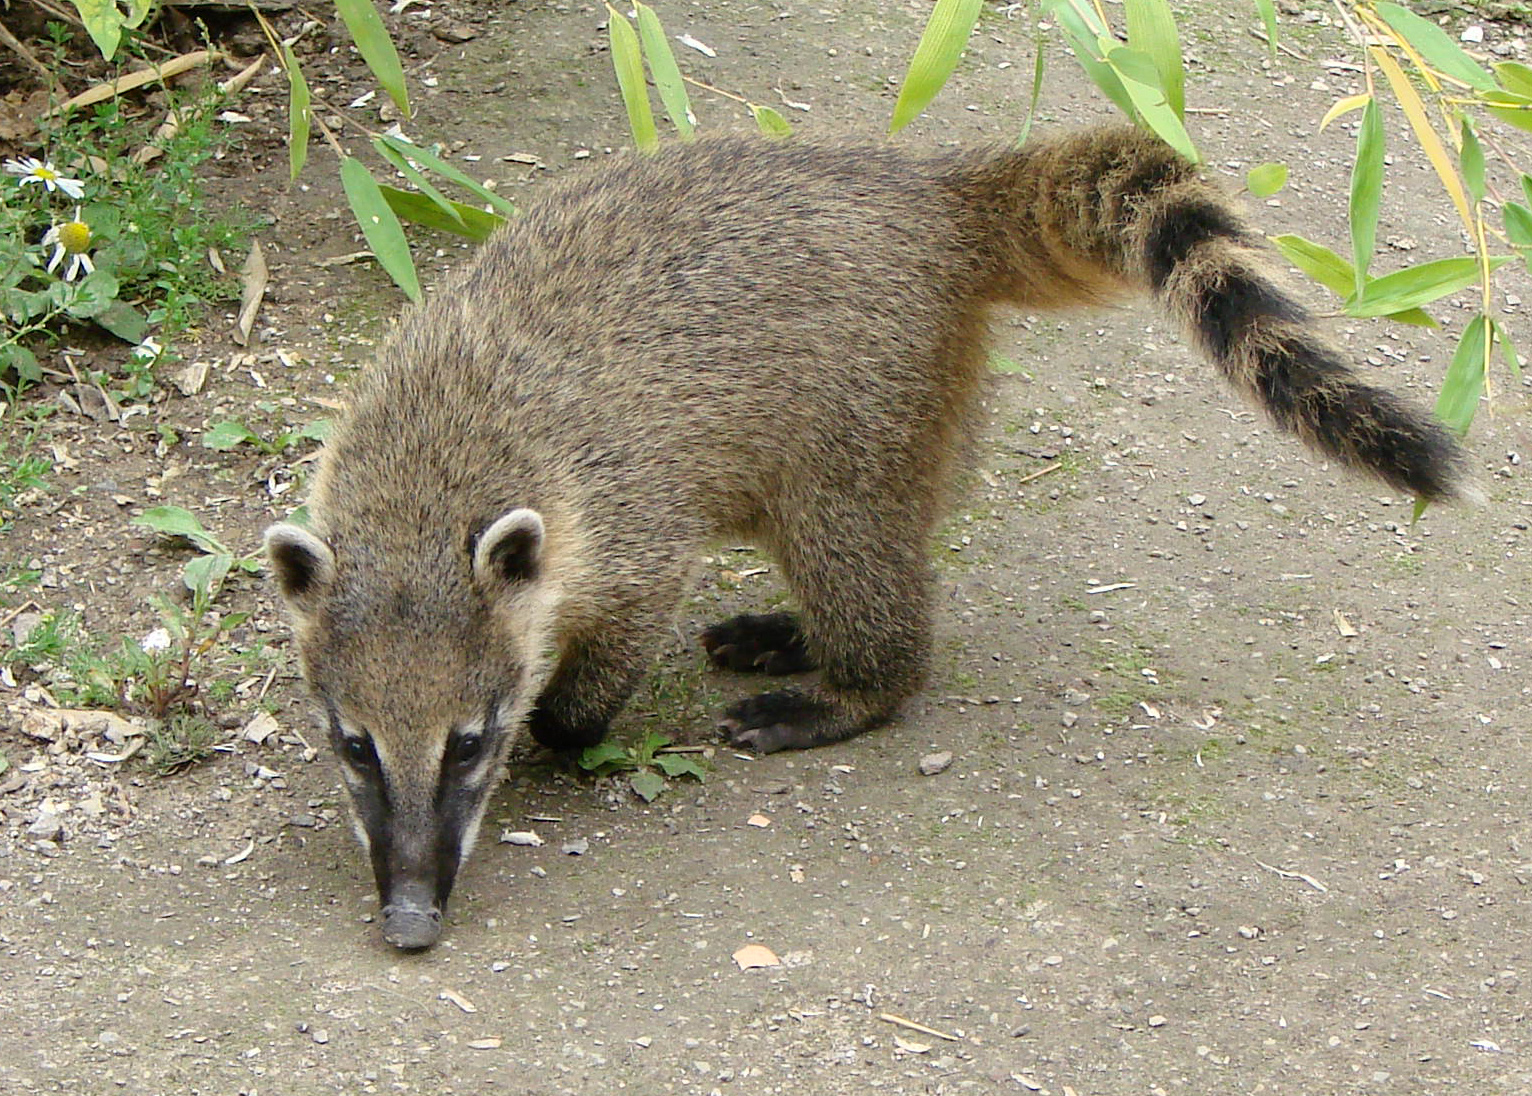 https://upload.wikimedia.org/wikipedia/commons/5/5e/Coati_roux_Amiens_4.jpg